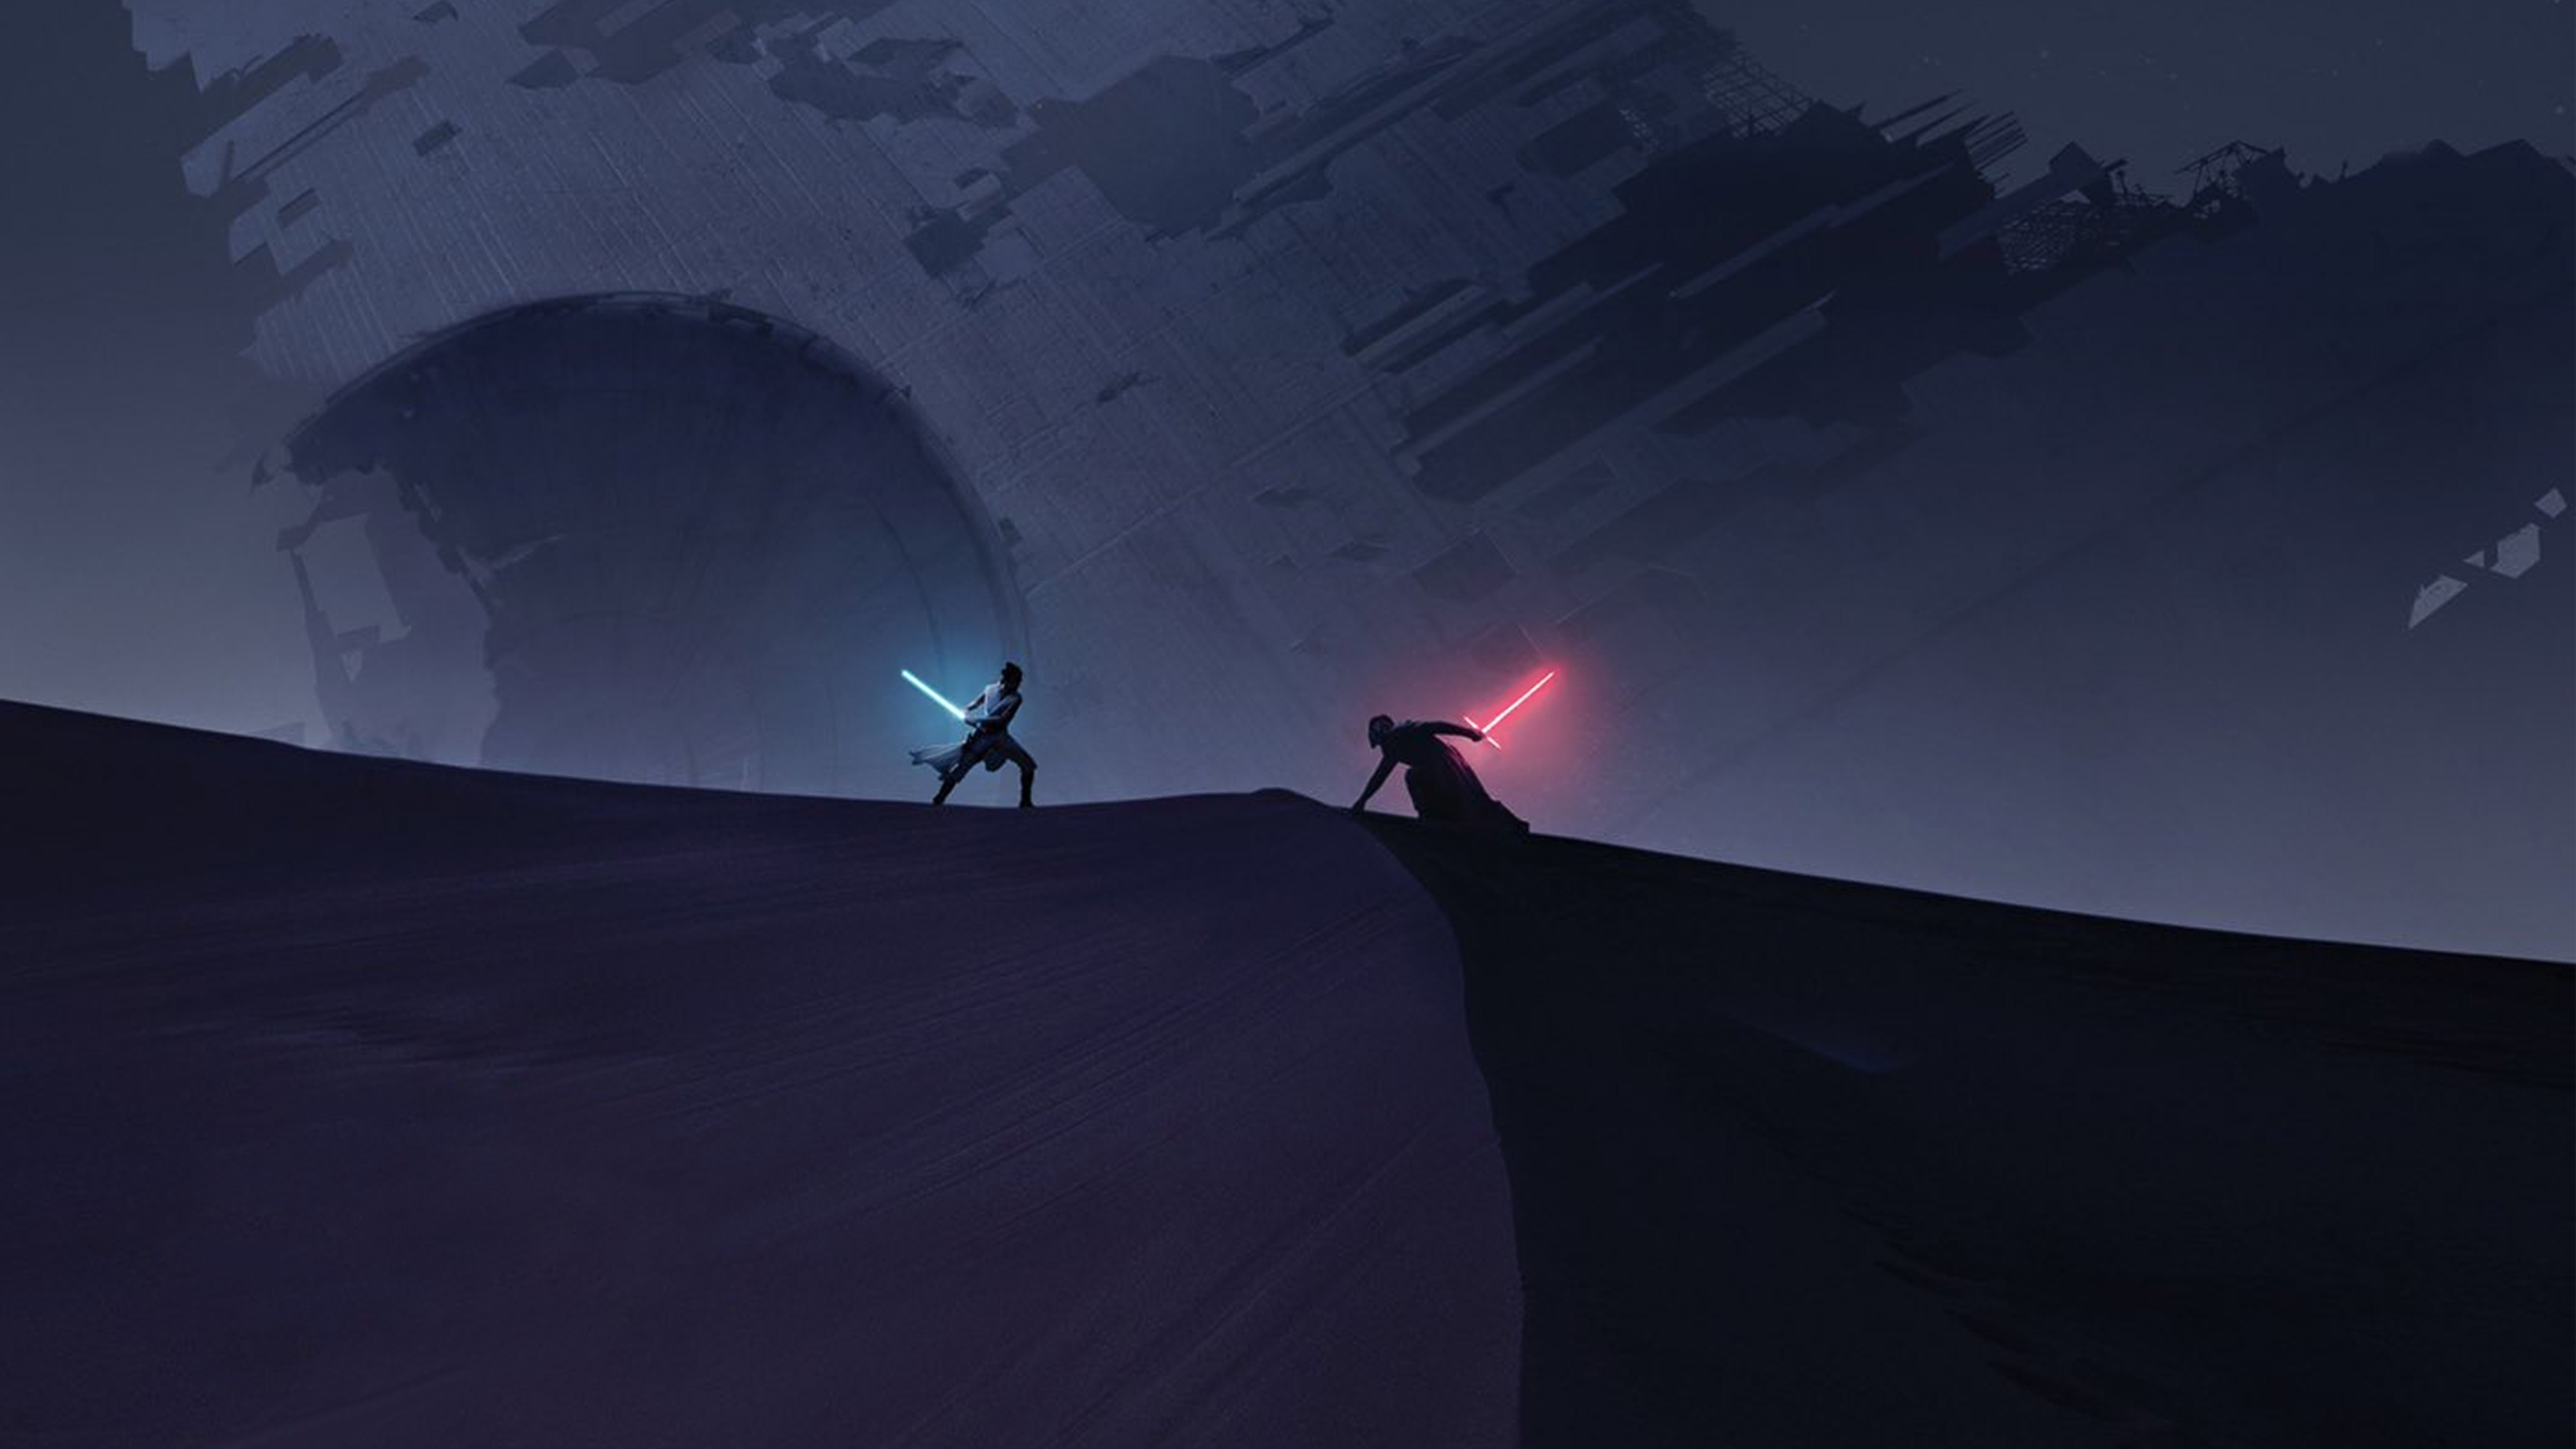 7680x4320 Star Wars 2019 8k Wallpaper Hd Movies 4k Wallpapers Images Photos And Background